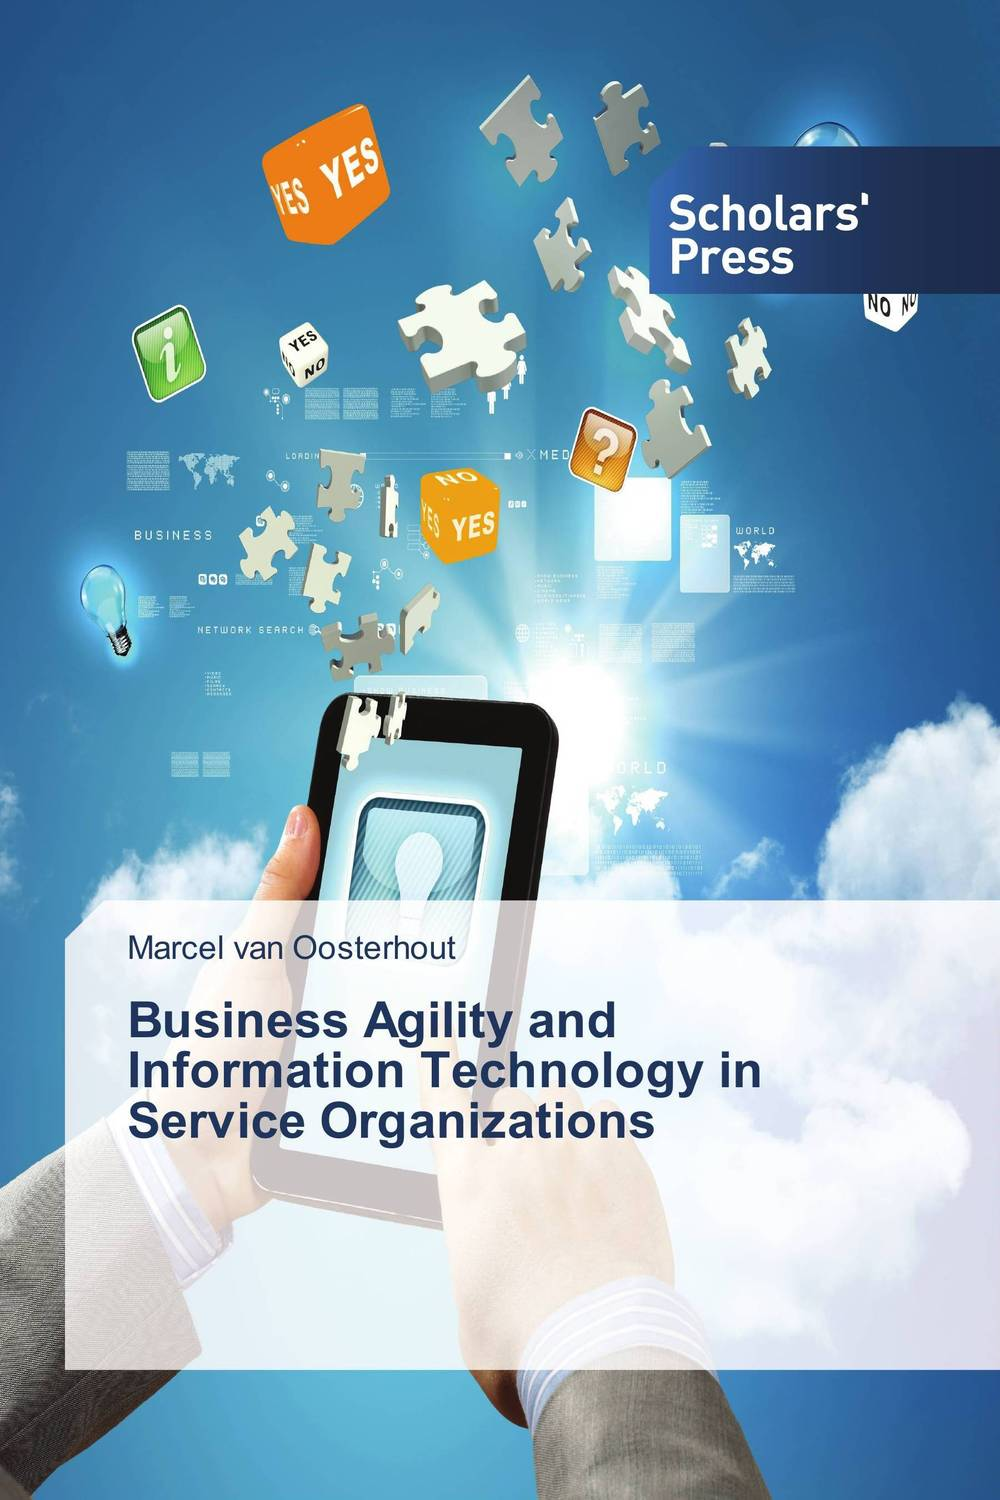 Business Agility and Information Technology in Service Organizations robert hillard information driven business how to manage data and information for maximum advantage